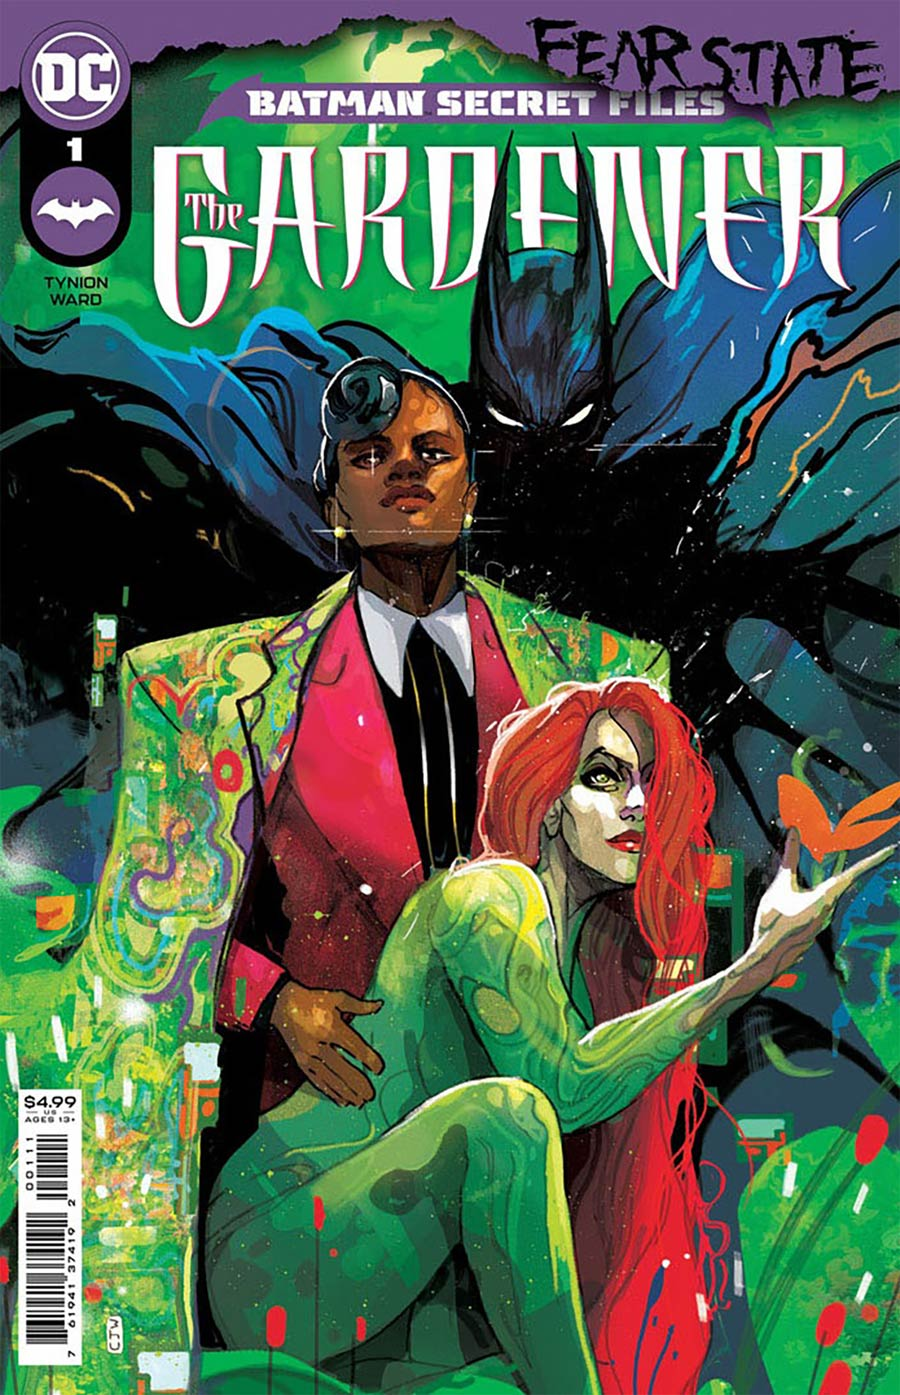 Batman Secret Files The Gardener #1 (One Shot) Cover D DF Gold Signature Series Signed By James Tynion IV